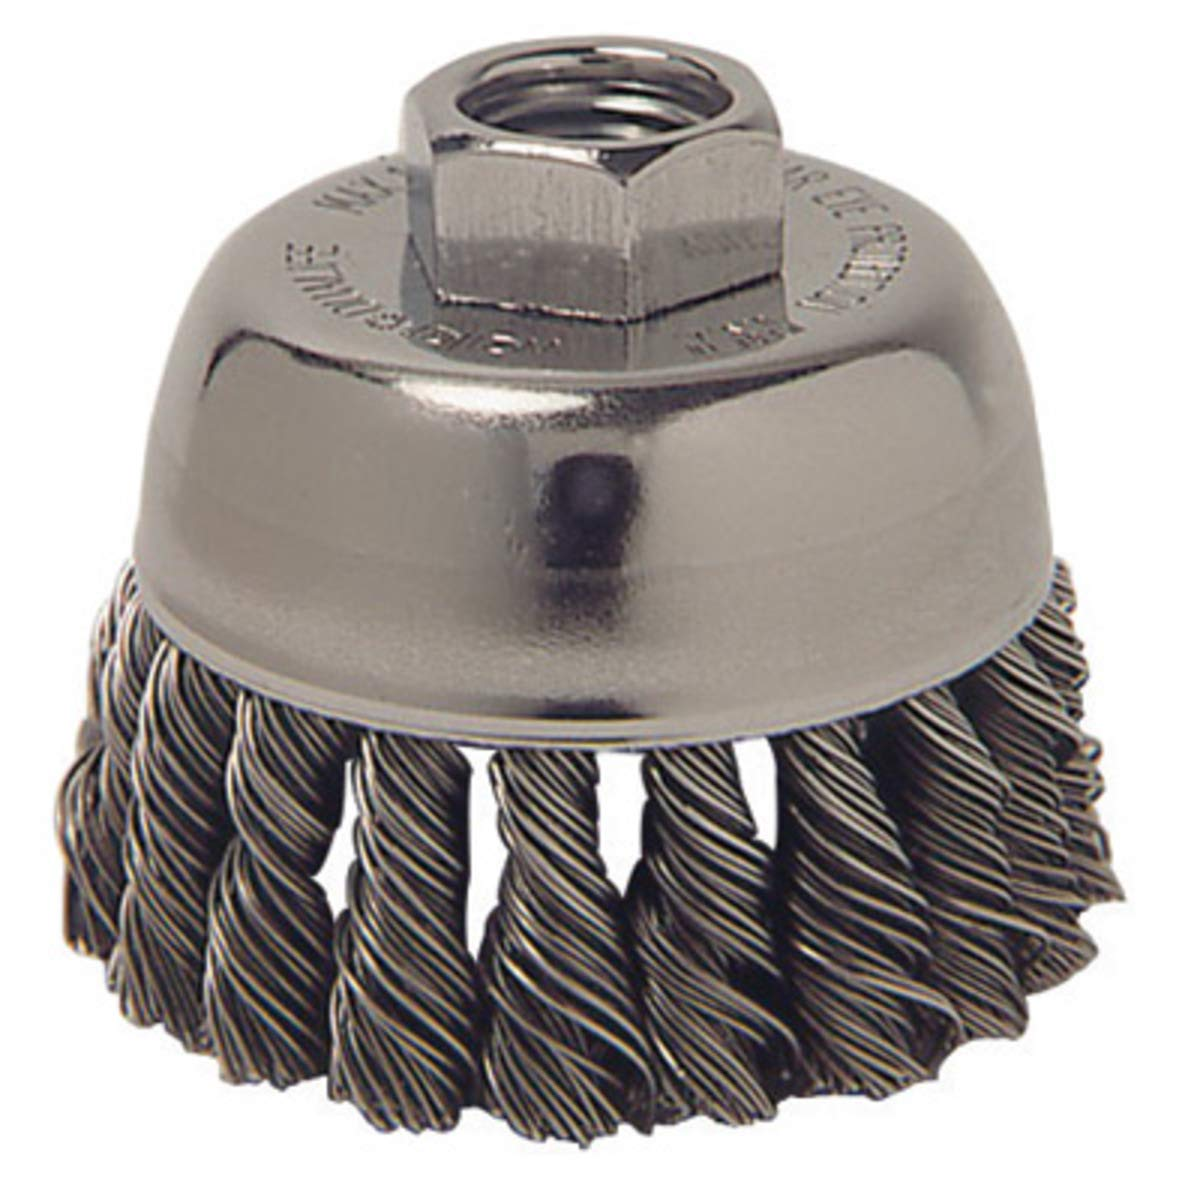 Weiler 3'' X 5/8'' - 11 Vortec Pro Carbon Steel Single Row Coarse Knot Wire Cup Brush For Use On Right Angle Grinders (Display Package) - 5 Each/Pack